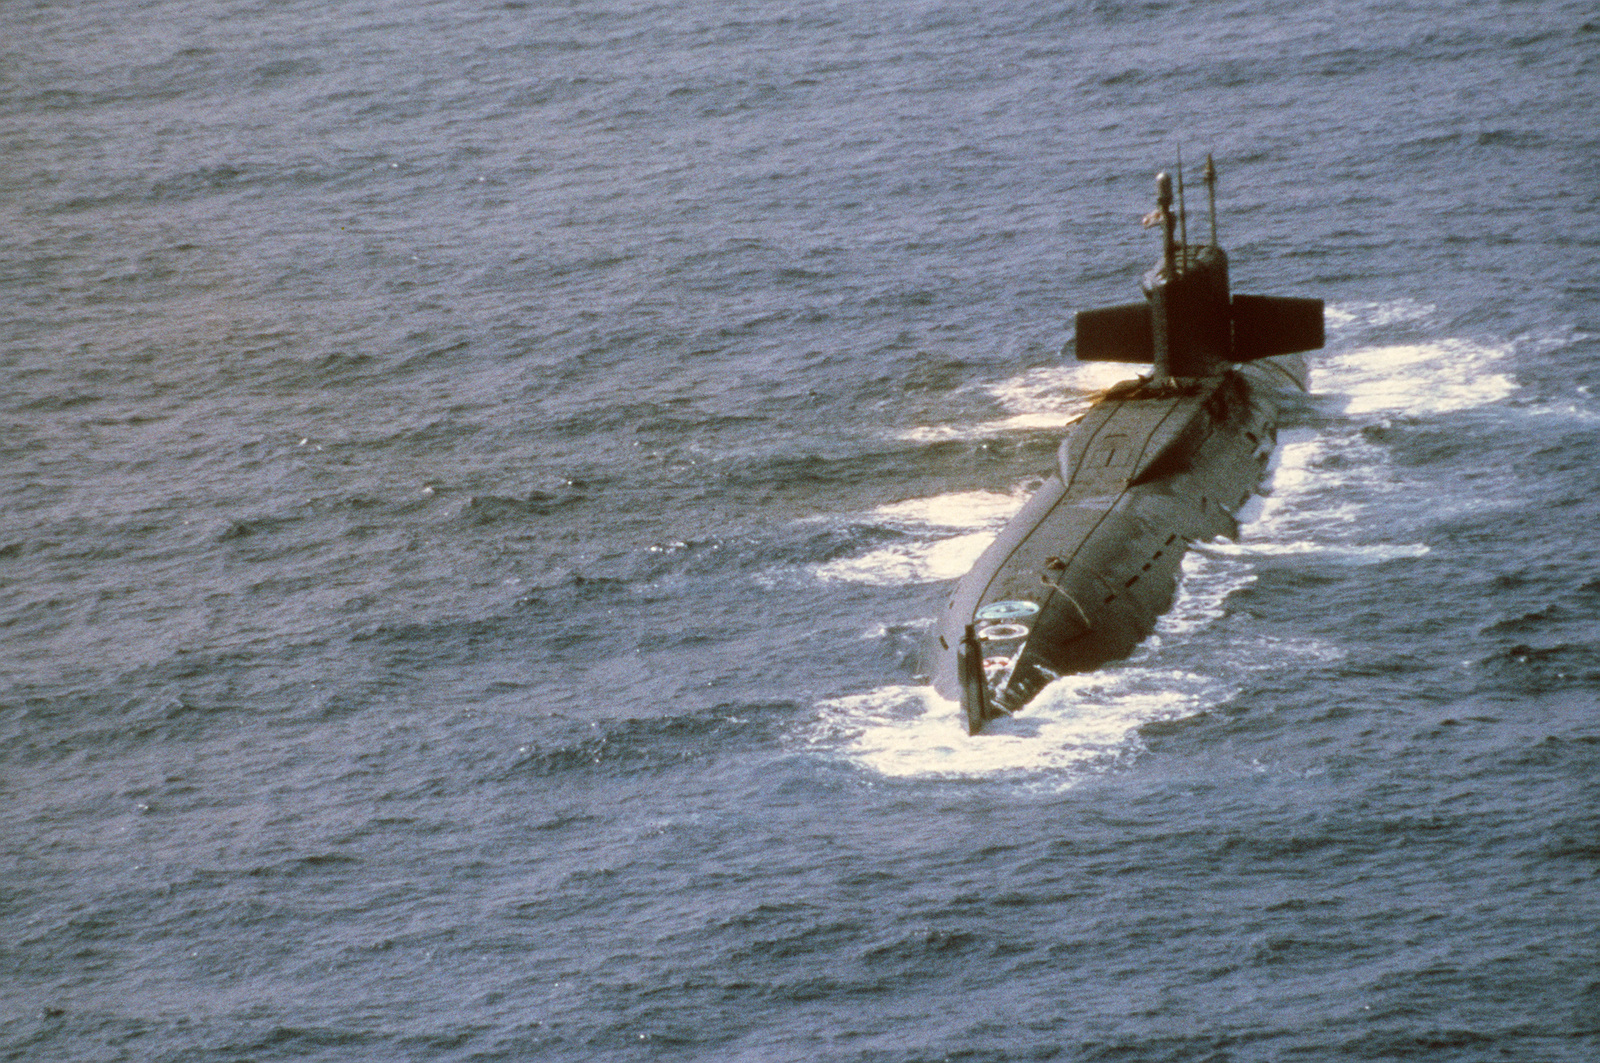 A starboard quarter view of the Soviet Yankee class nuclear-powered ballistic missile submarine that was